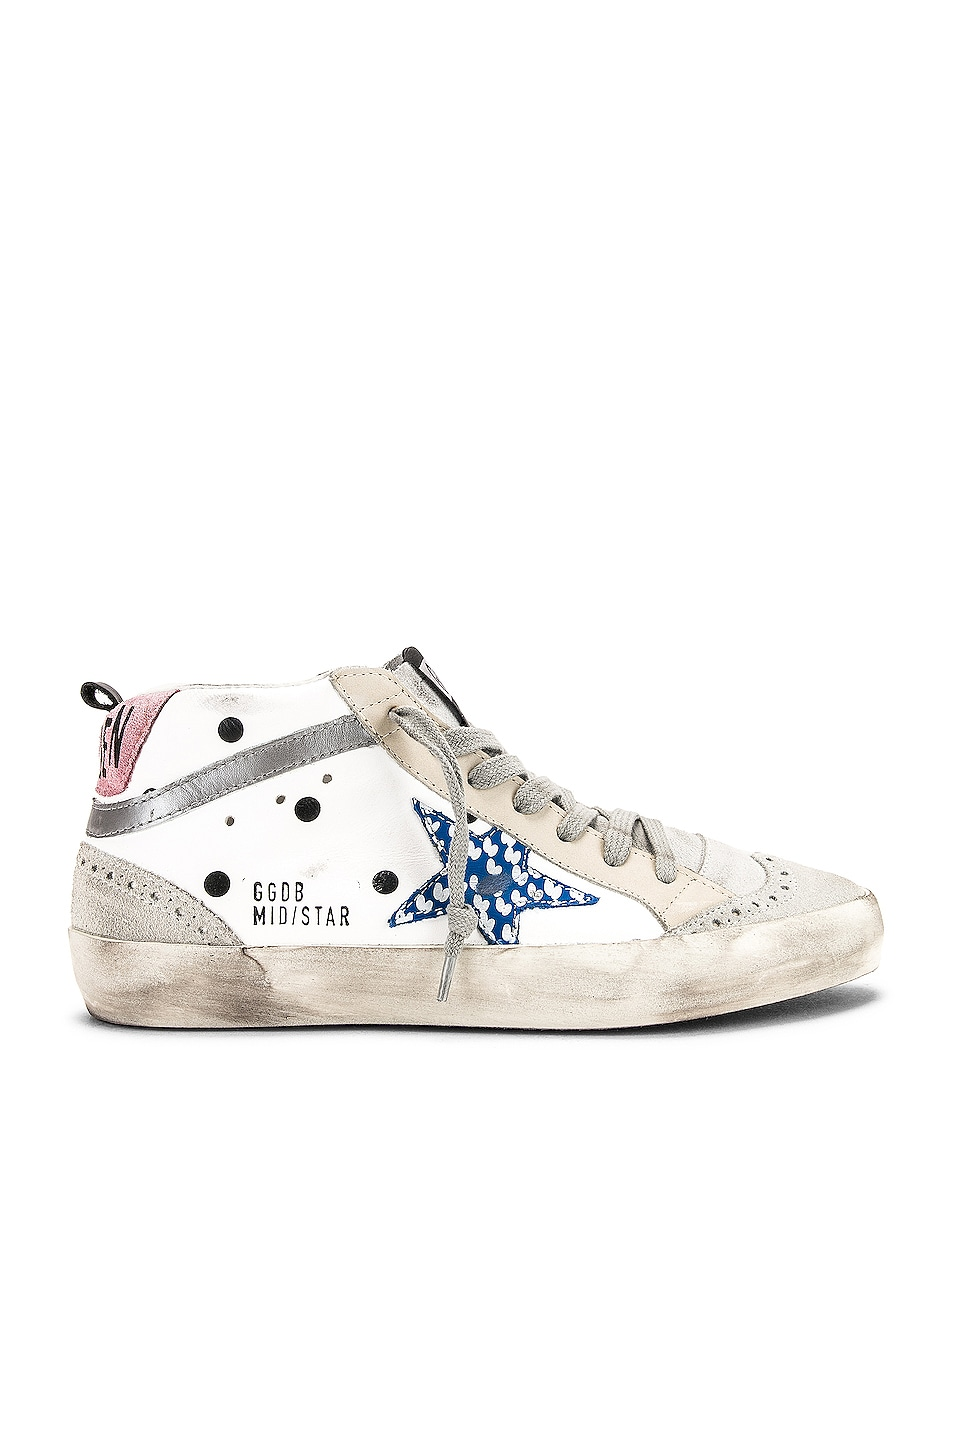 Image 1 of Golden Goose Mid Star Sneakers in White Dot